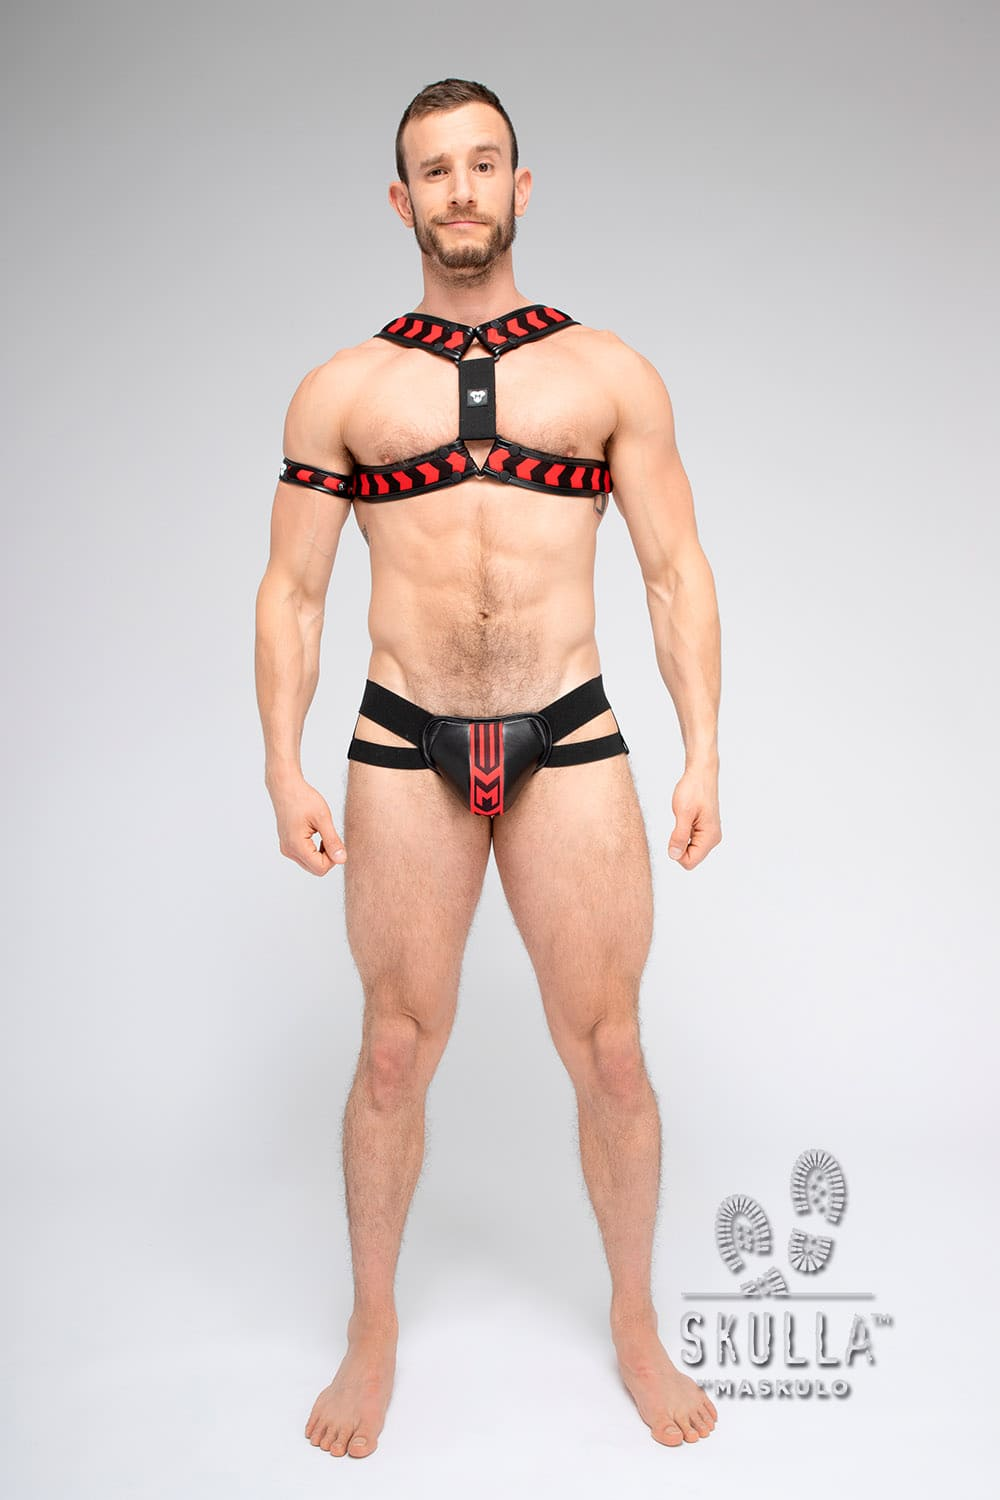 Skulla. Double sided X-style Bulldog Harness